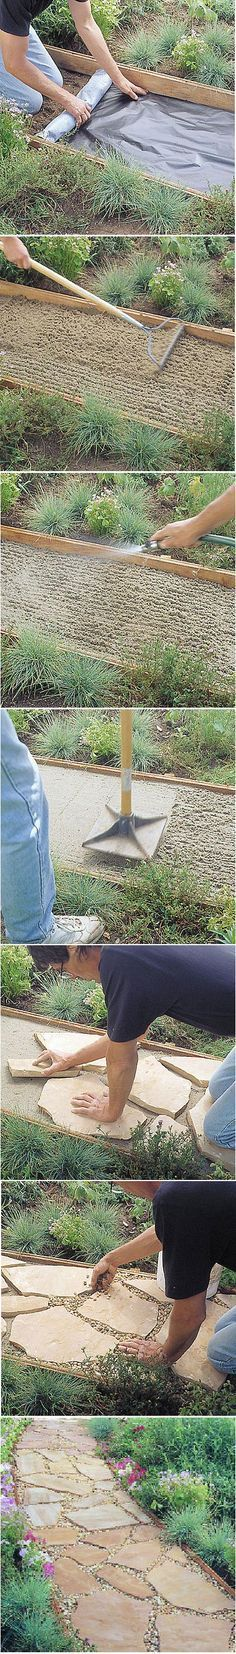 Step 1Install benderboard edging first, then put down landscape fabric (available at nurseries) to prevent weeds. Secure fabric edges under the benderboard #landscapeedging